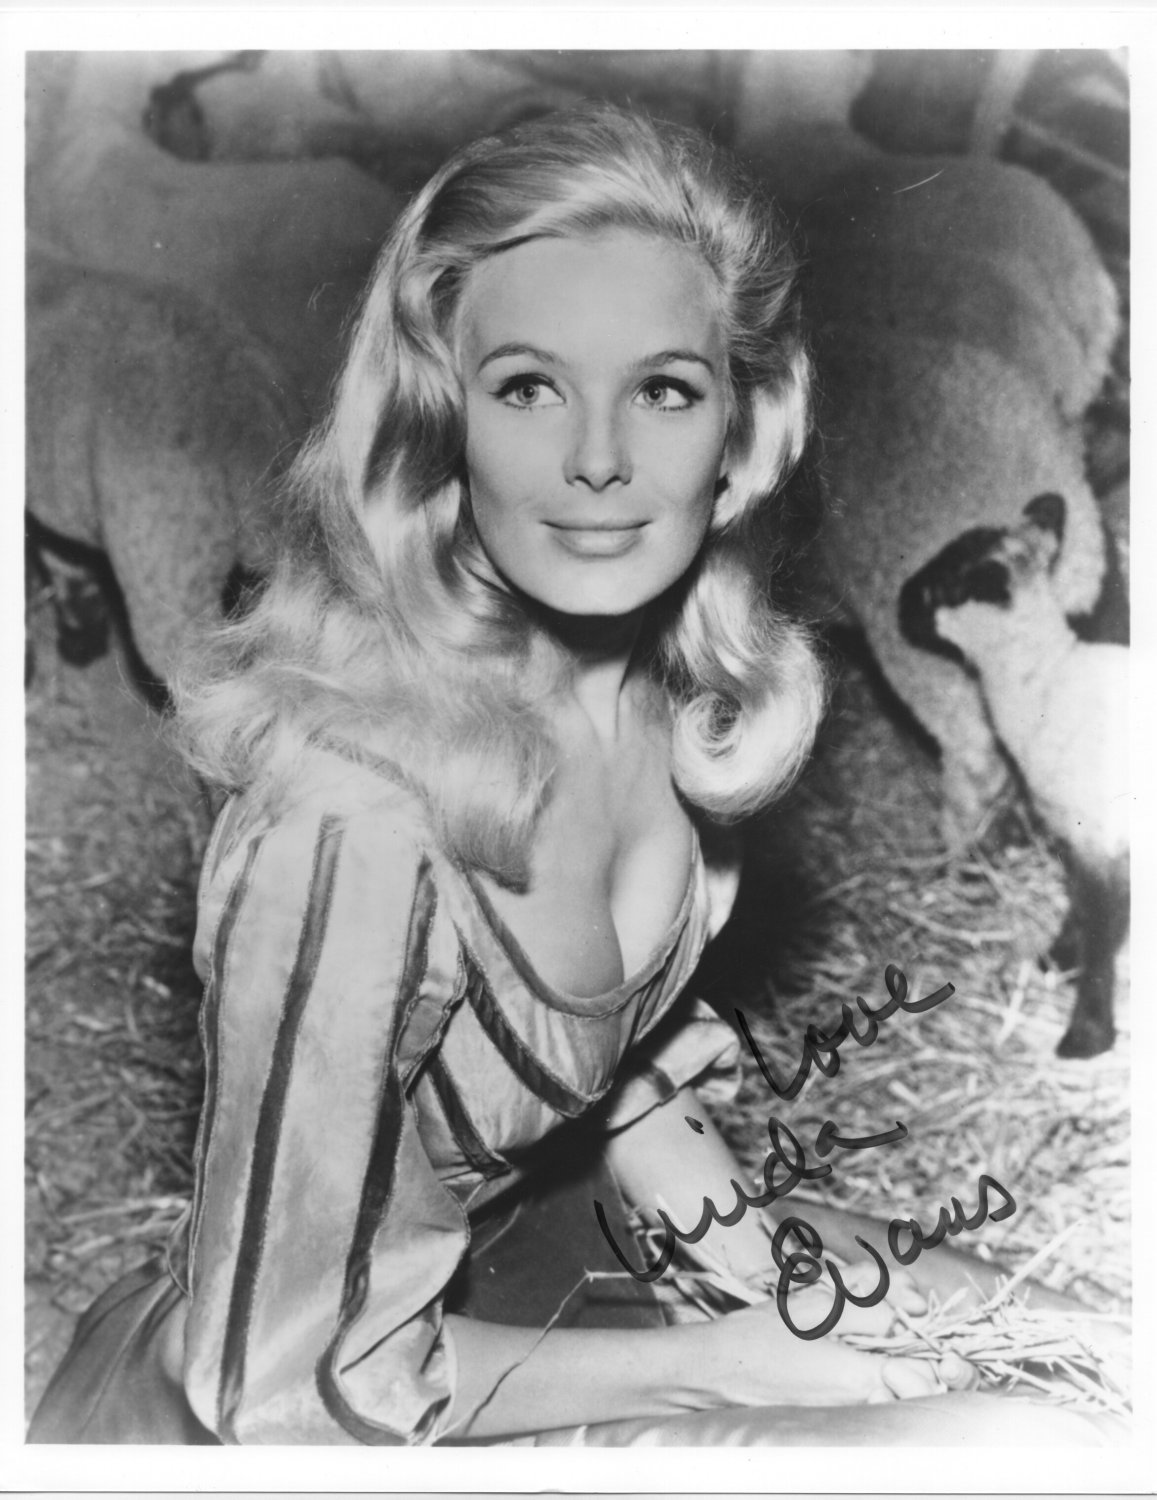 LINDA EVANS - THE BIG VALLEY TV SHOW - SO VERY SEXY - HAND SIGNED AUTOGRAPHED PHOTO WITH COA